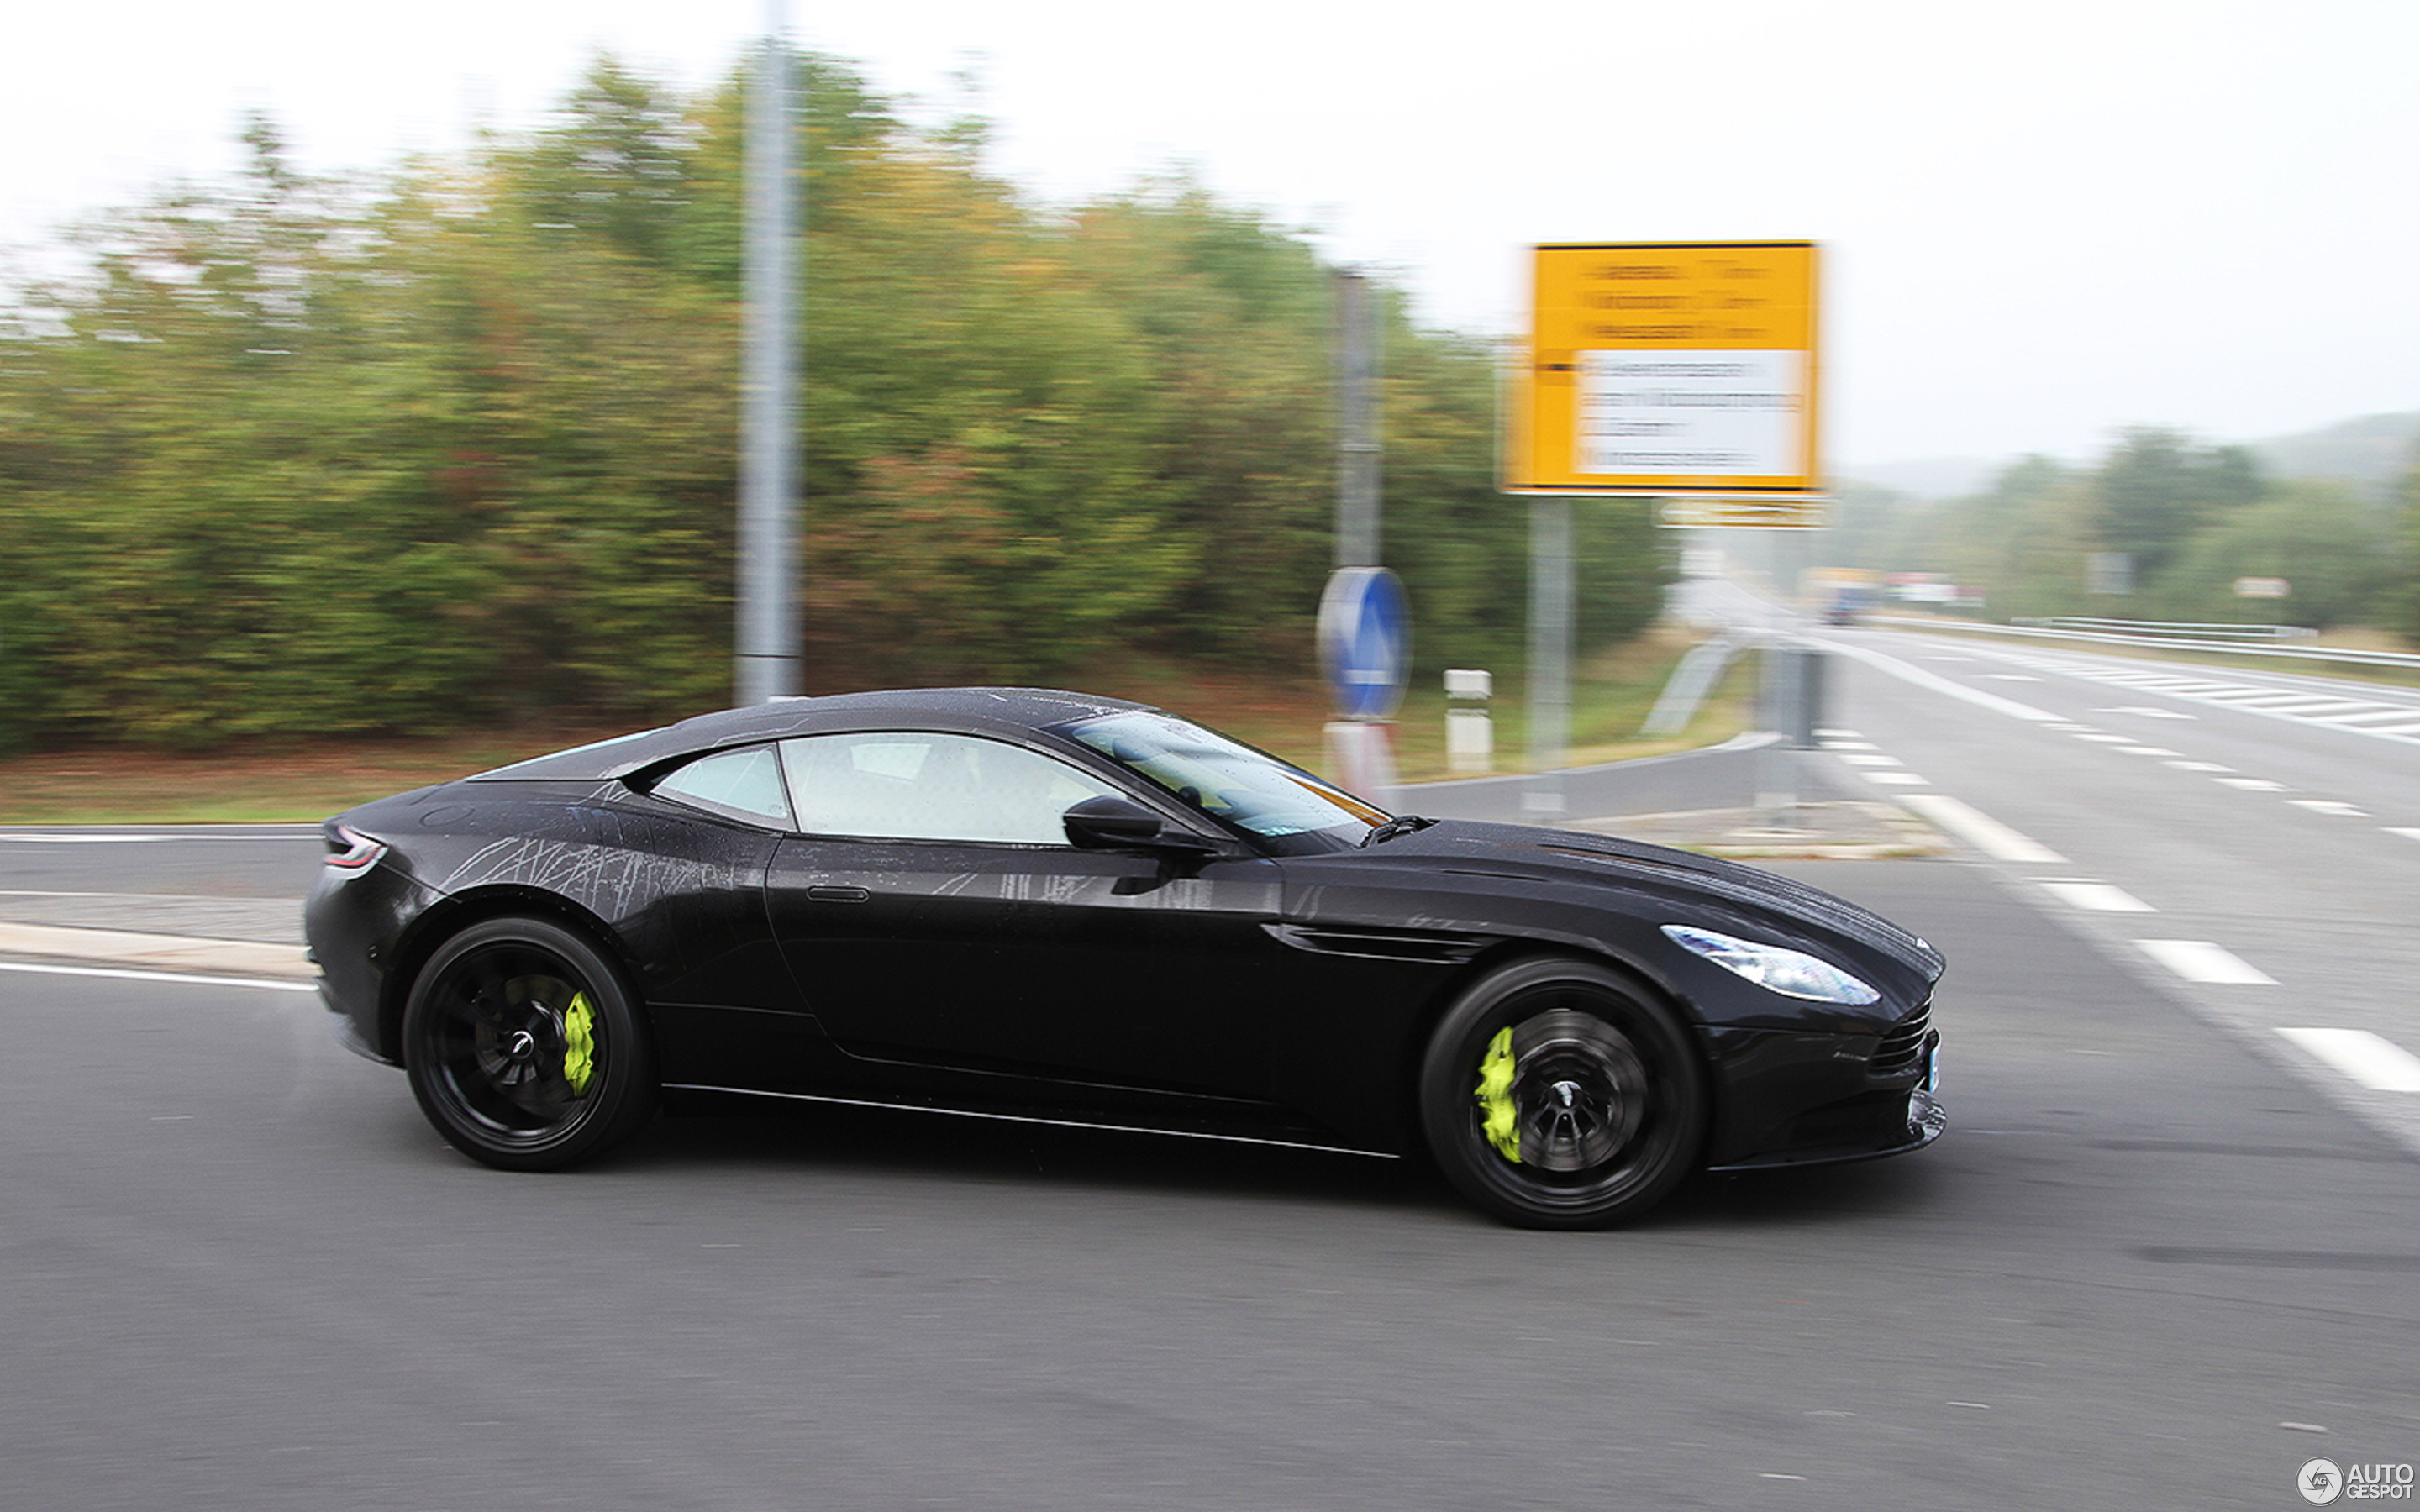 Aston Martin DB11 AMR 6 September 2018 Autogespot